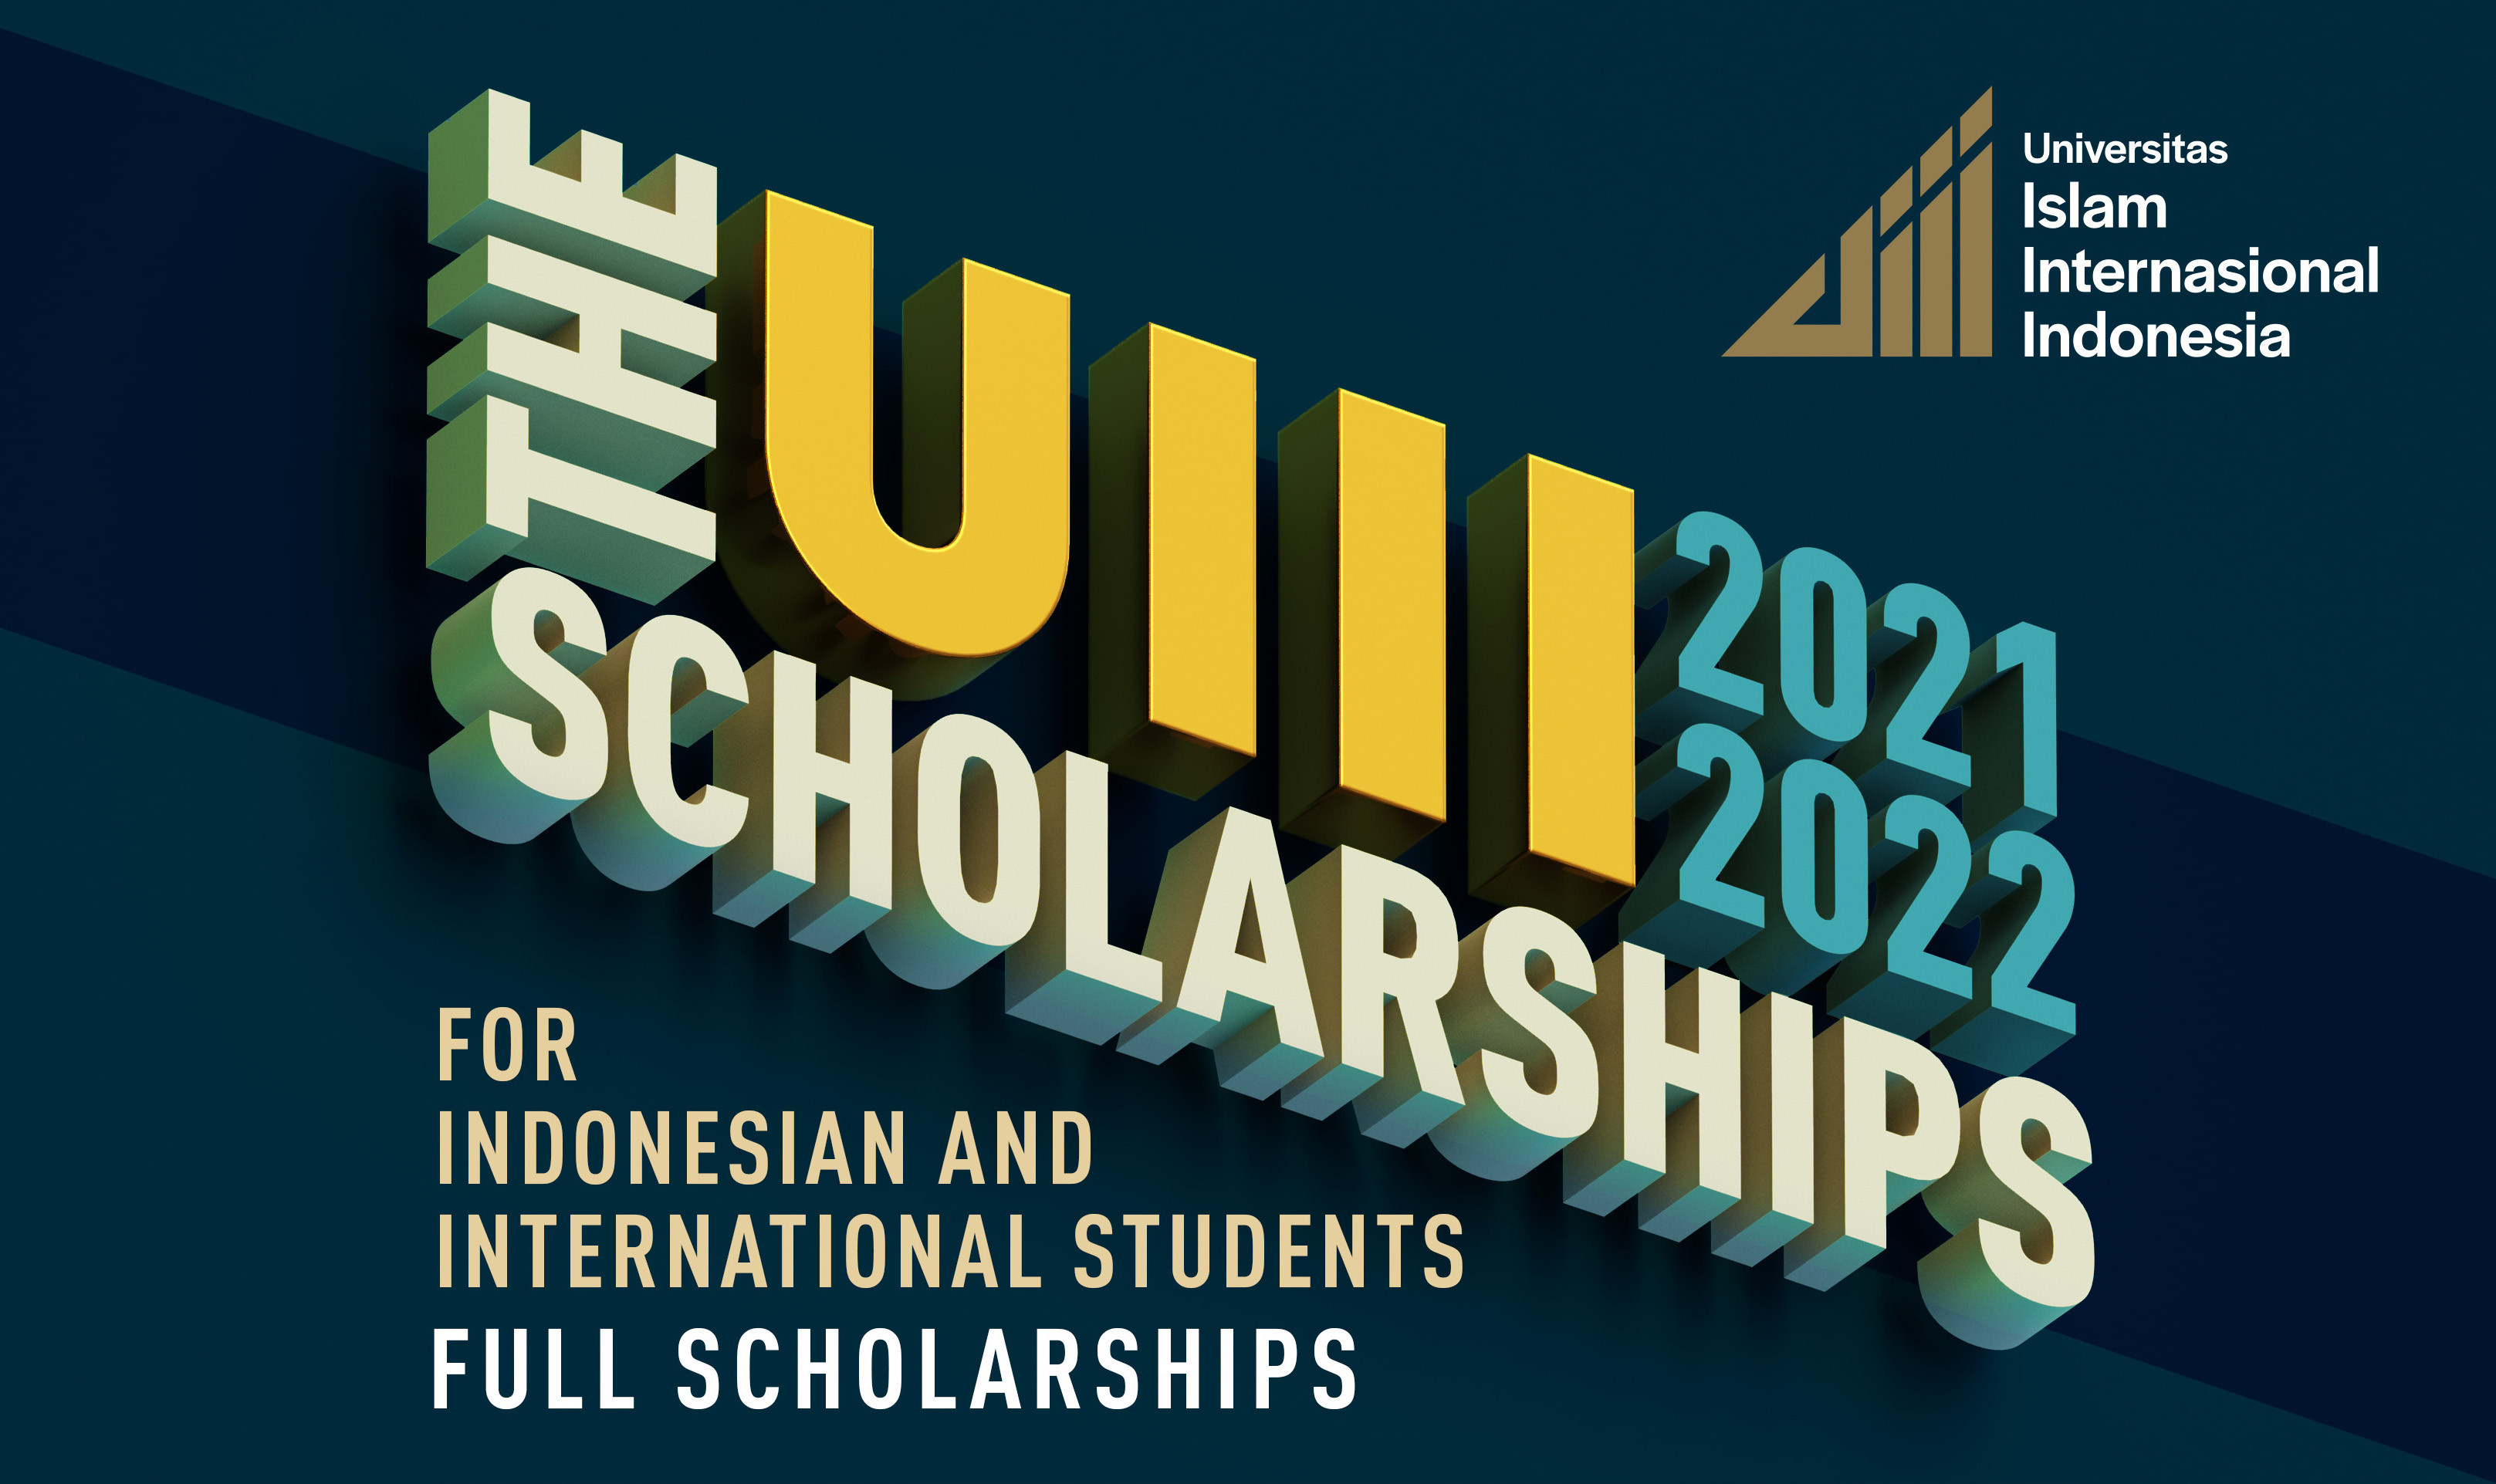 Scholarship Applications 'Explode' at UIII